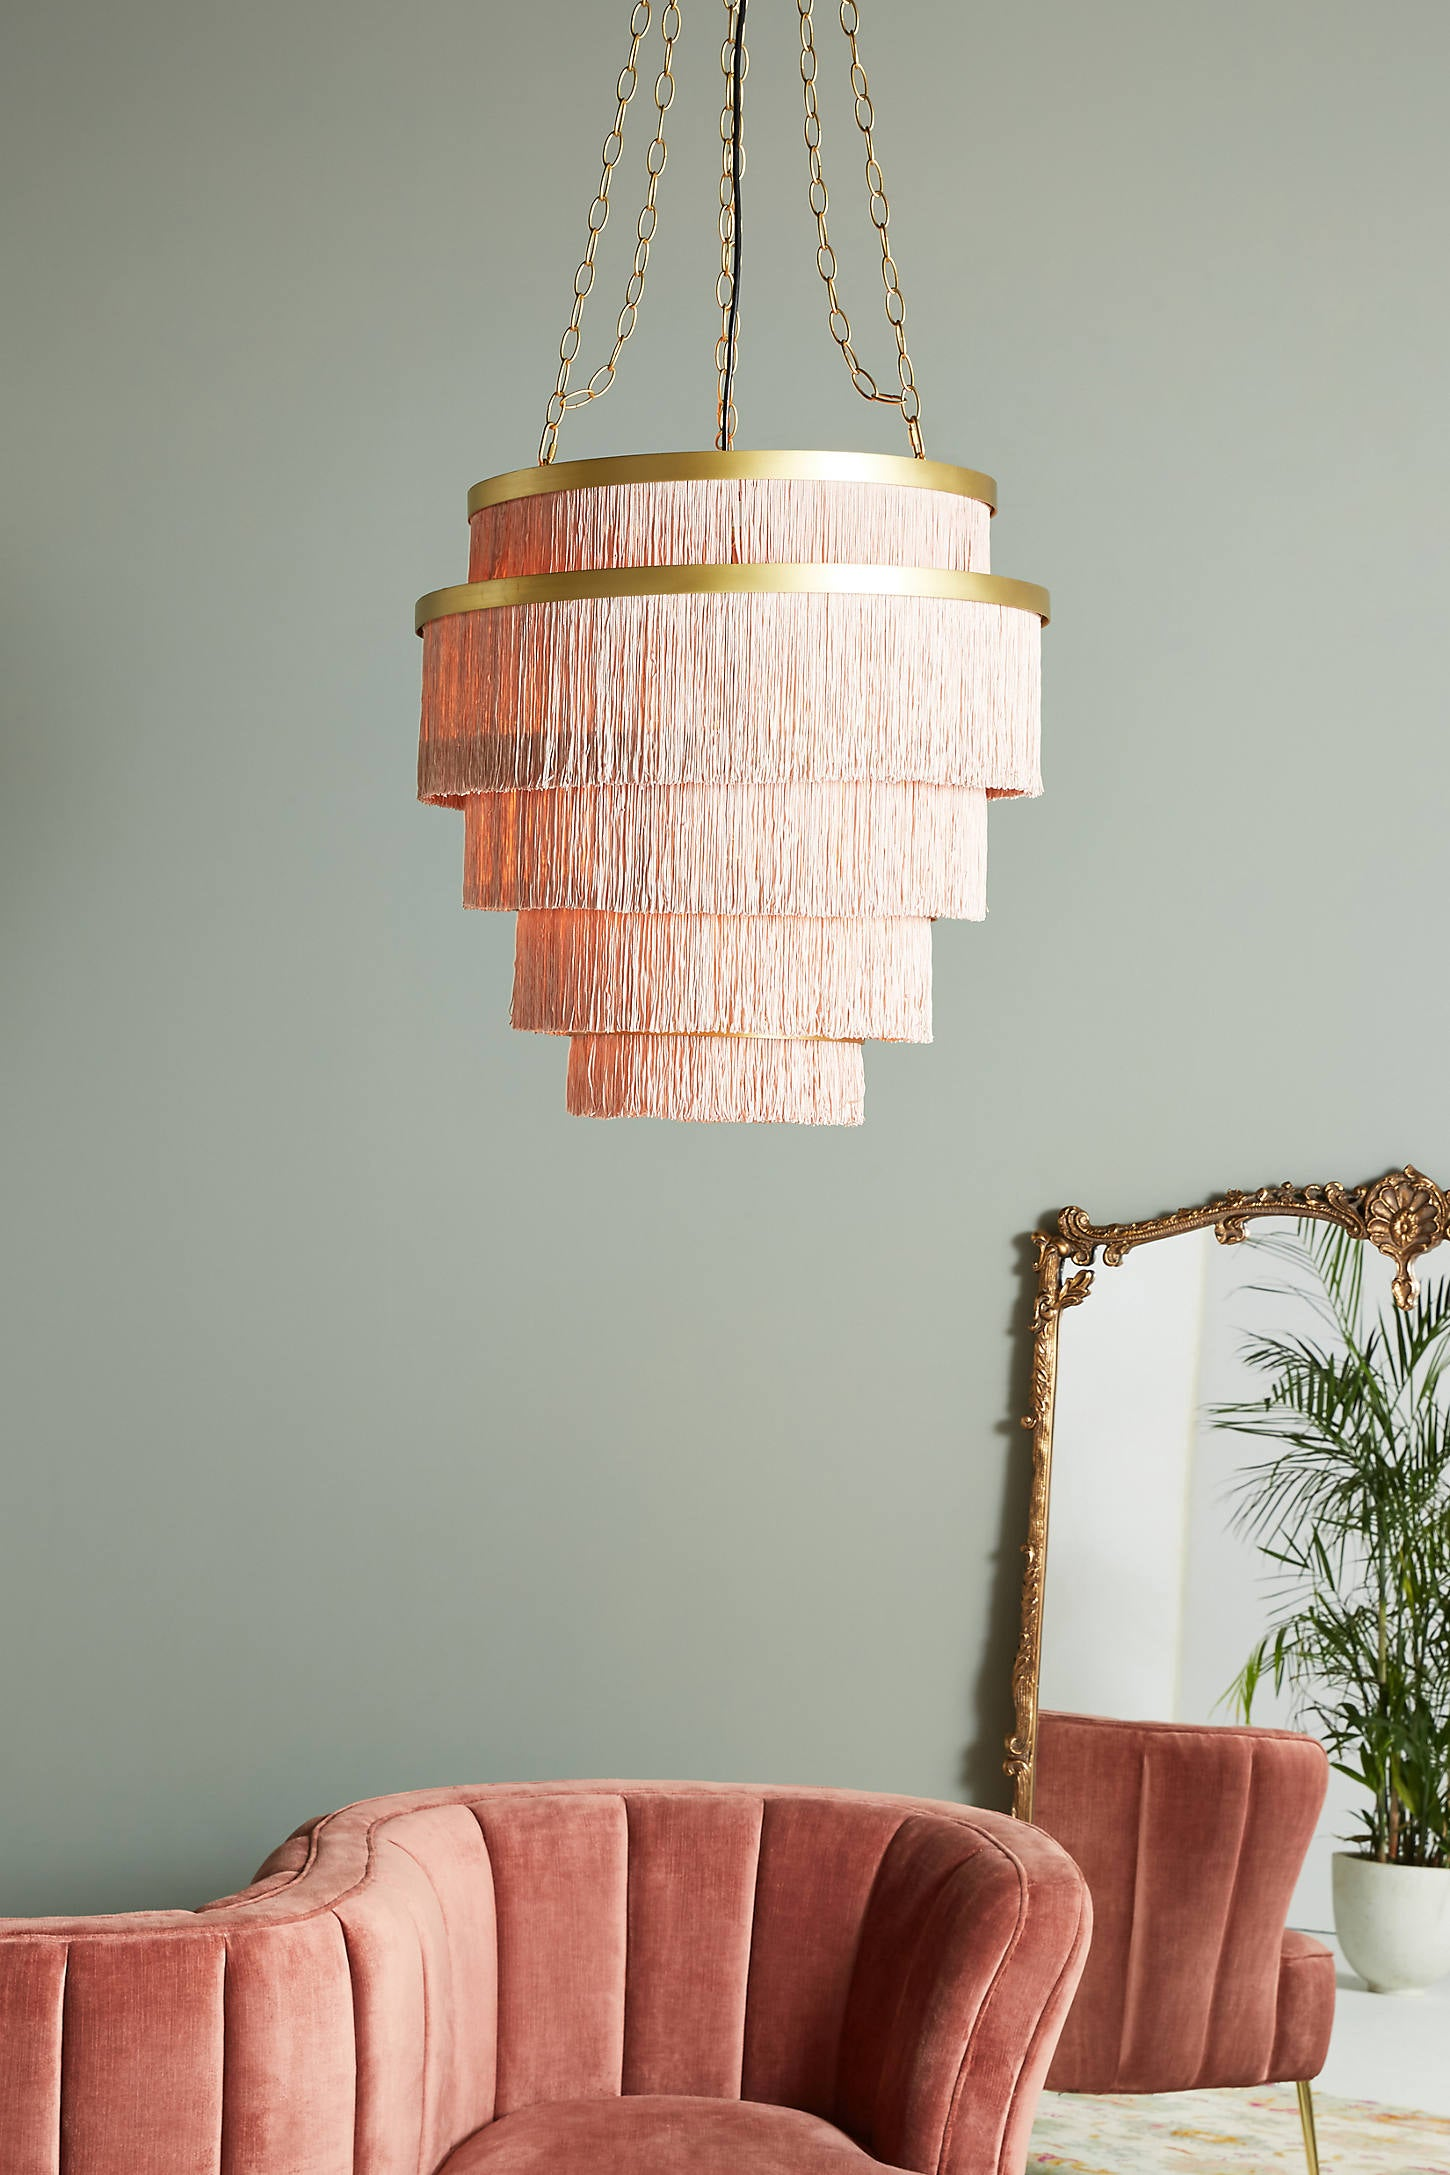 Fringe Decor Will Make Your Space Feel Extra Festive